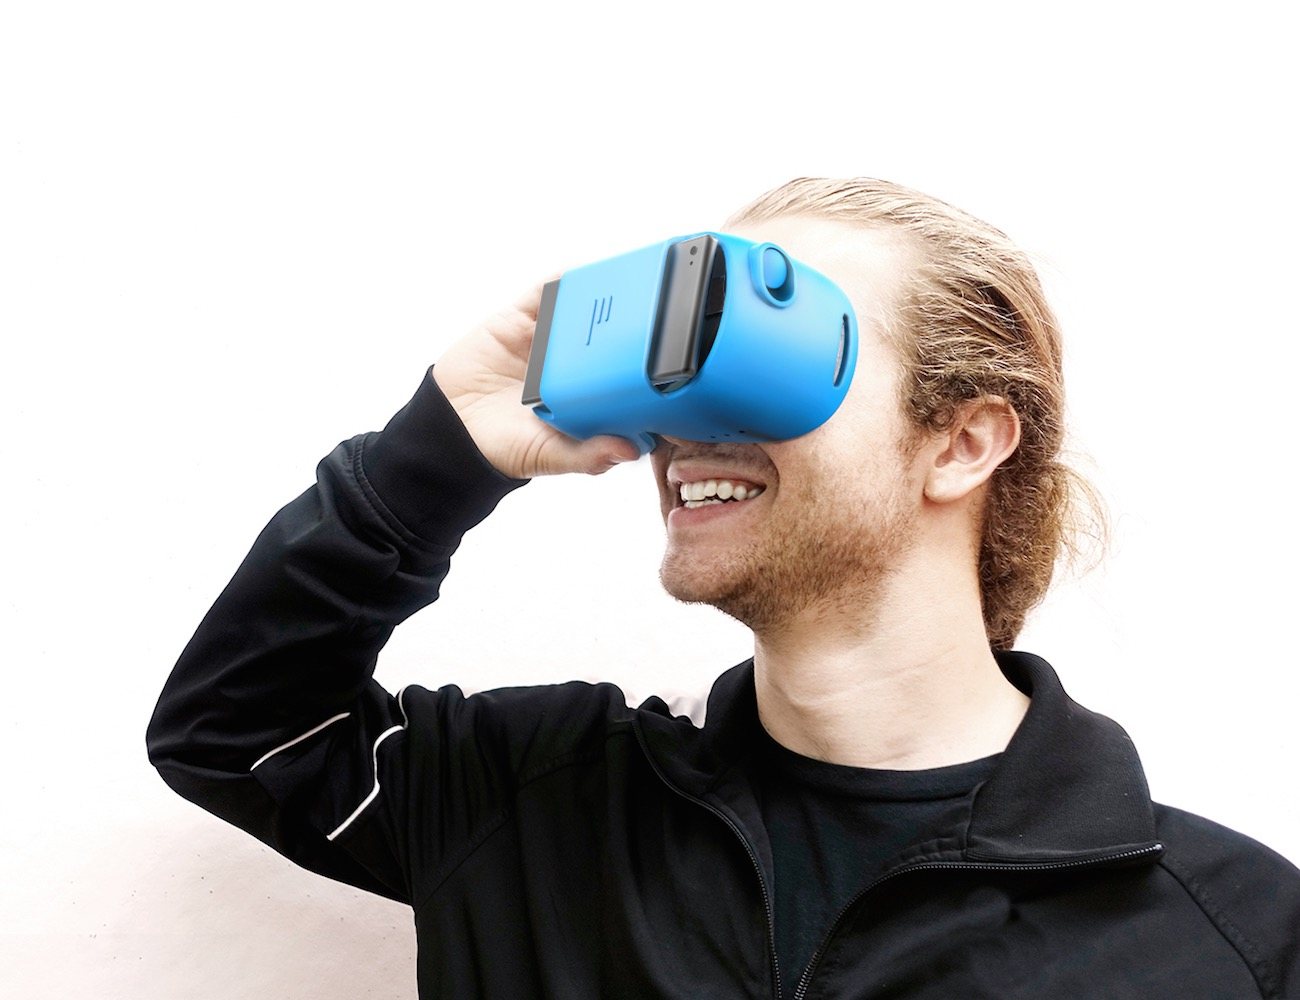 PLAY: A Virtual Reality Device For Everyone